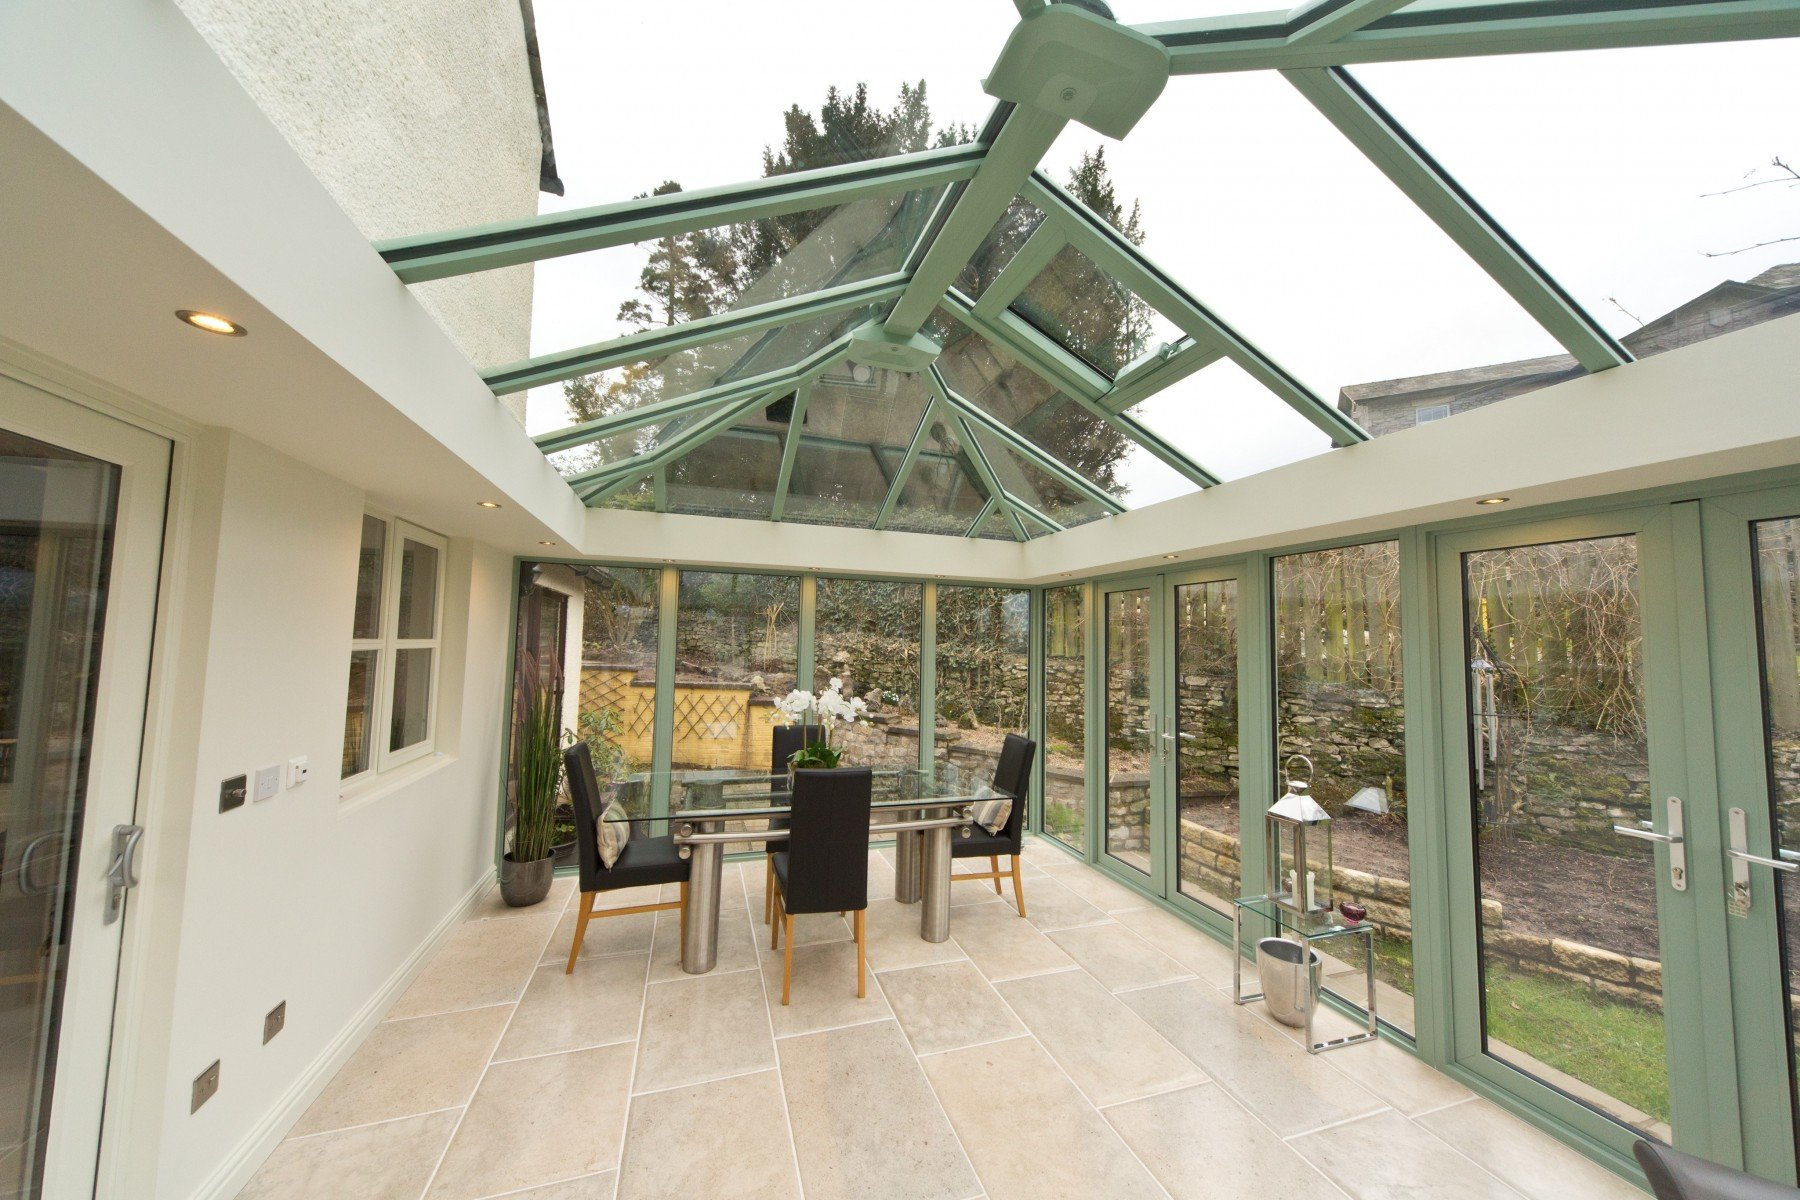 Conservatory and Extensions in Hampshire Basingstoke